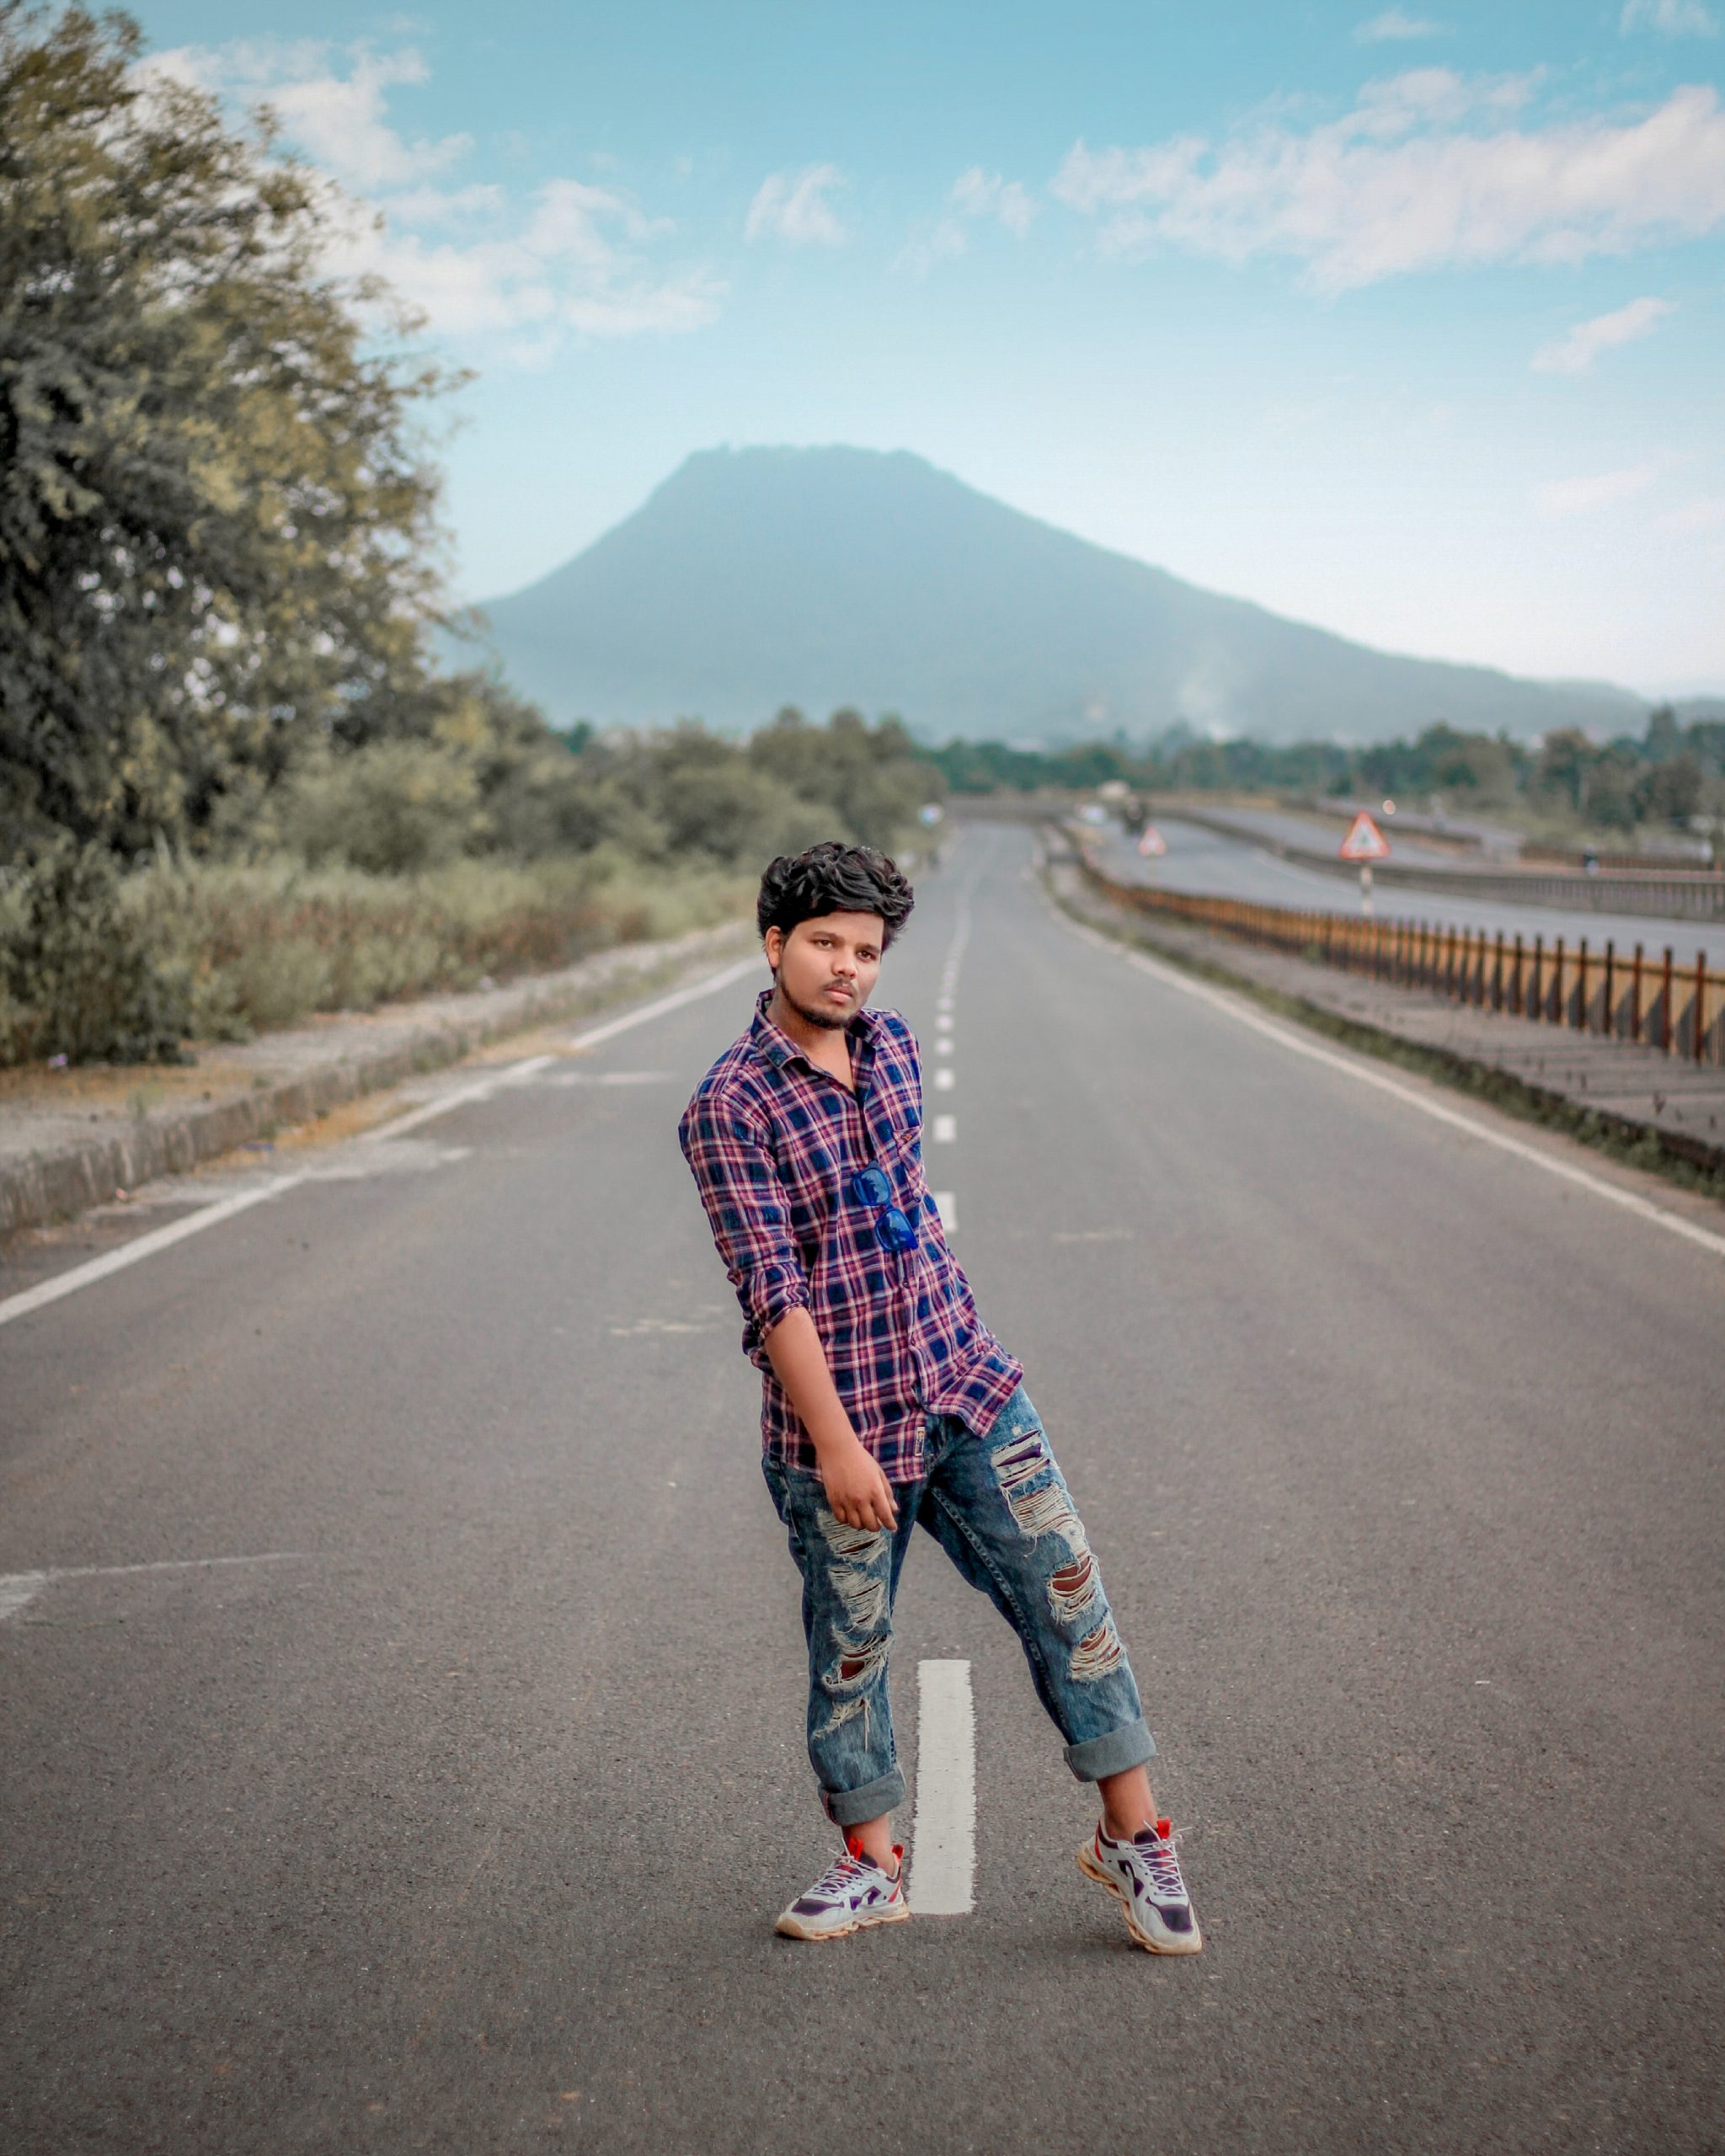 A boy in middle of highway